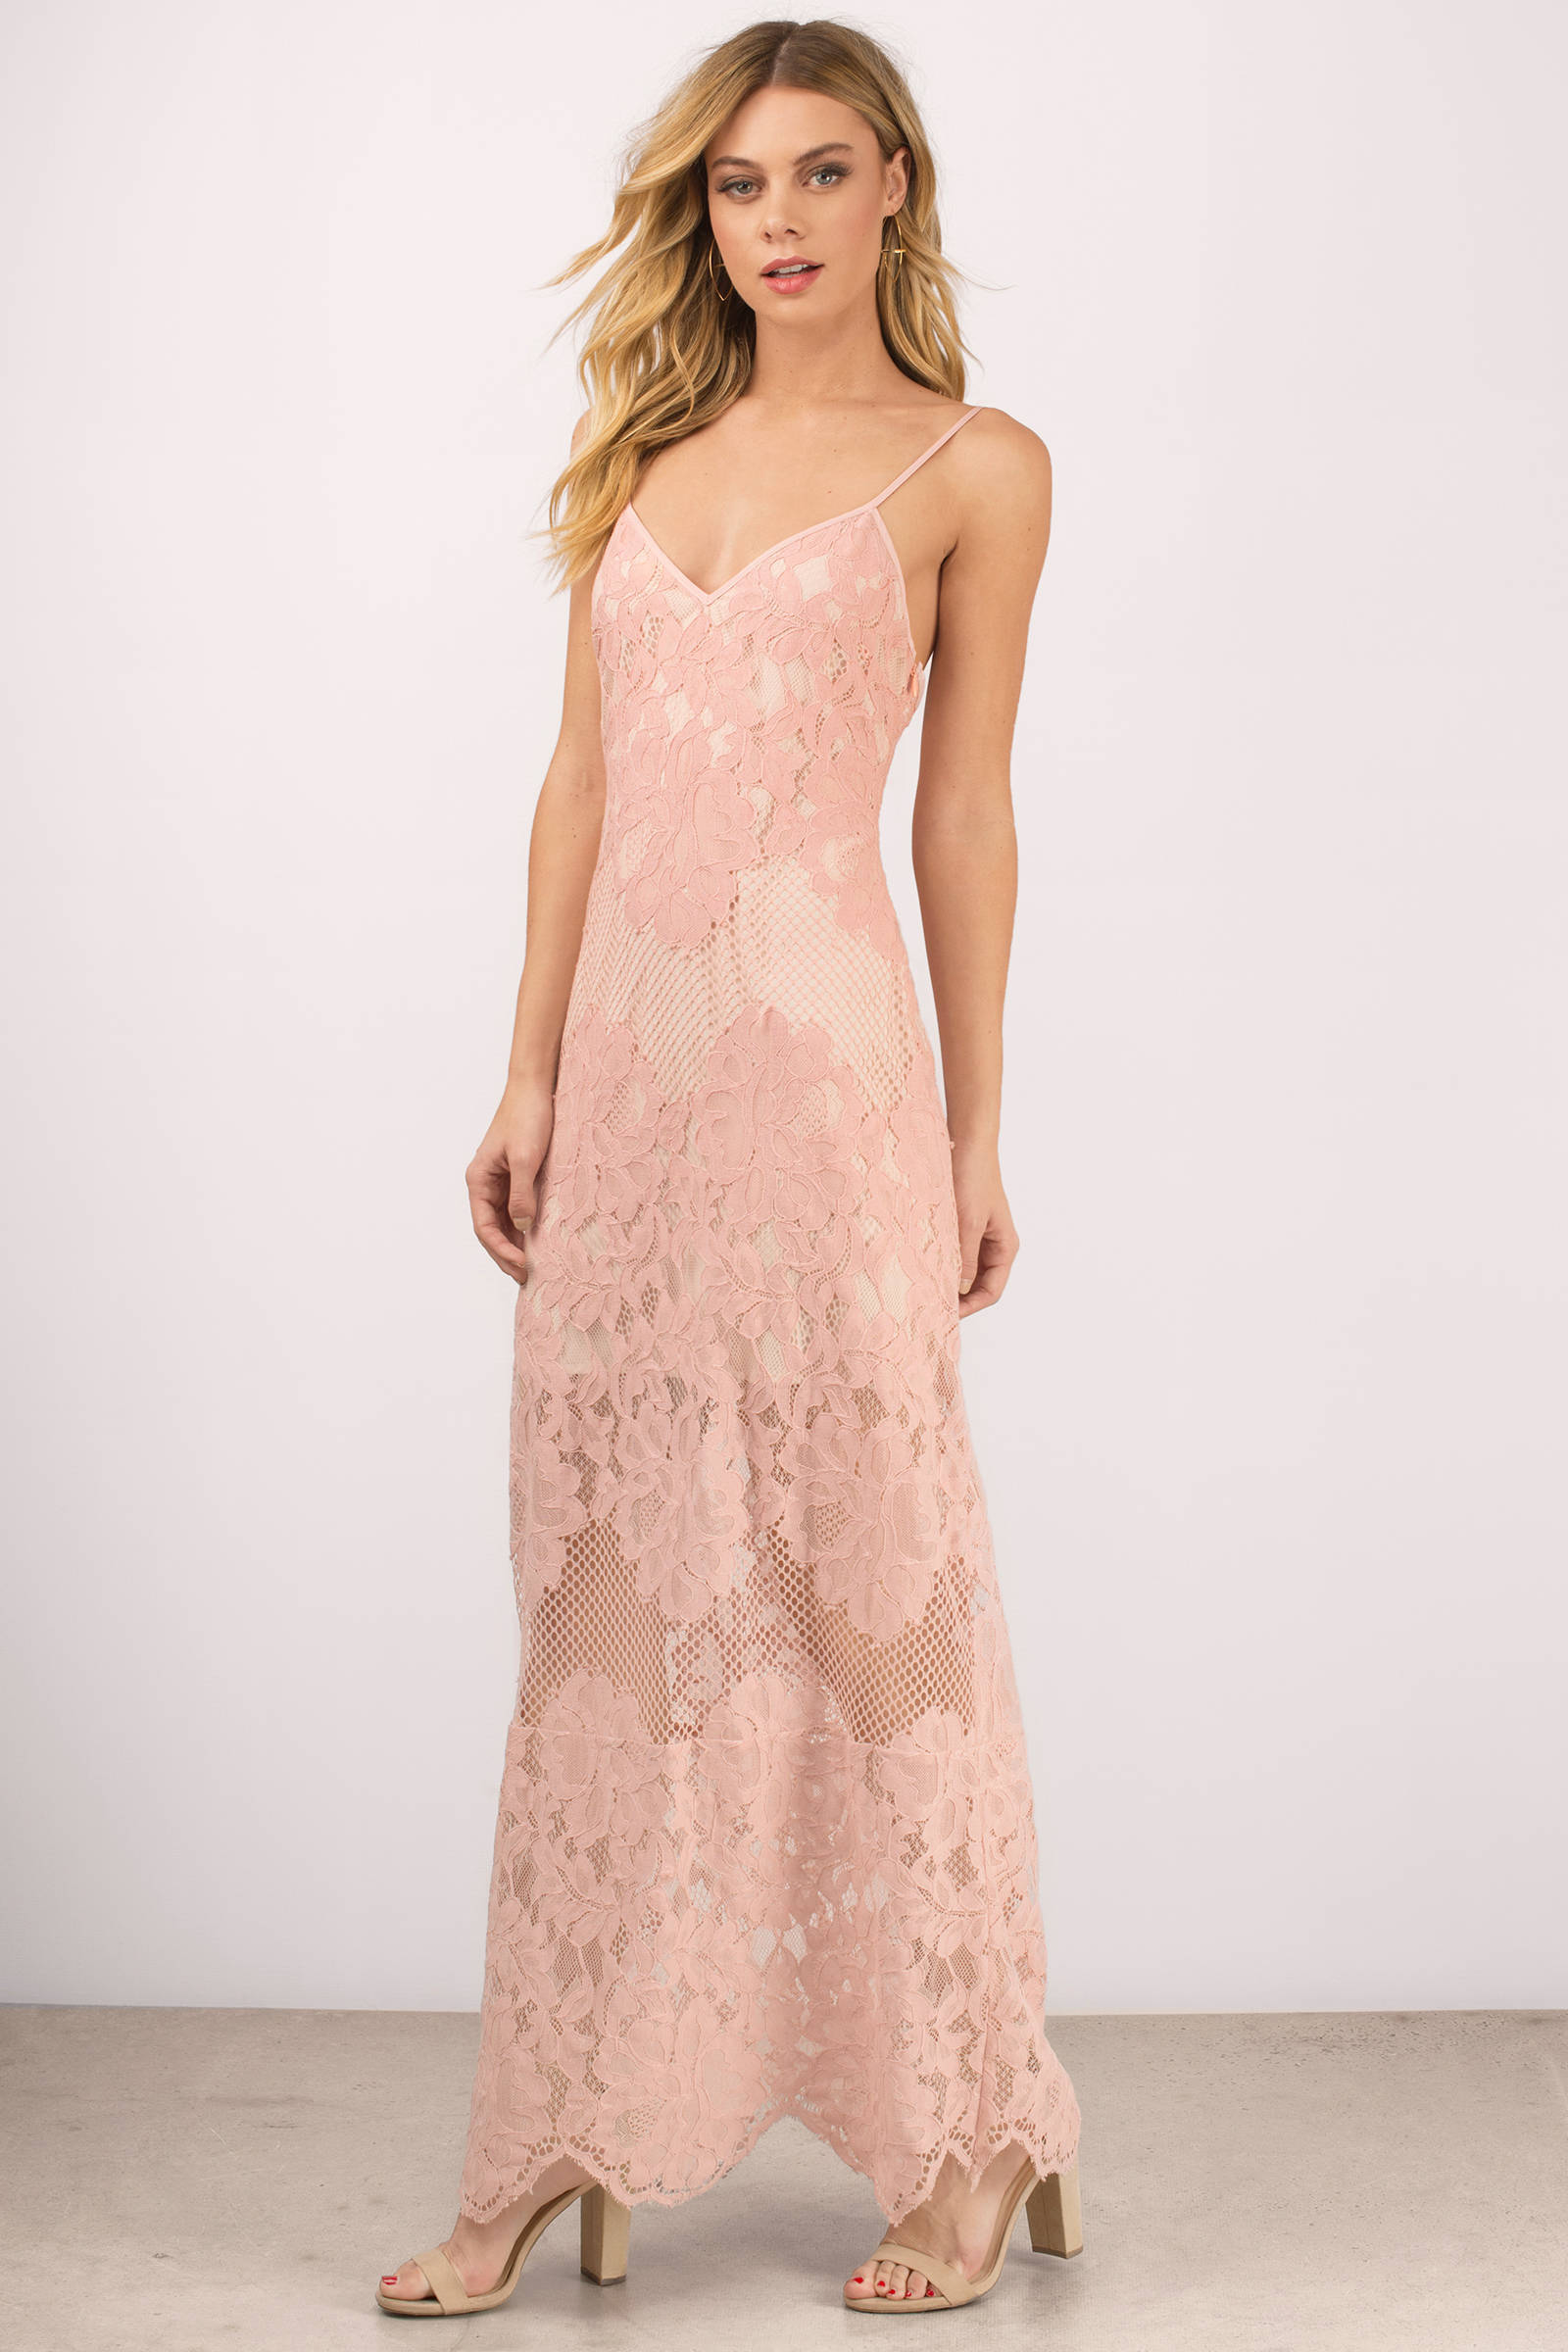 rose-wanderlust-lace-maxi-dress@